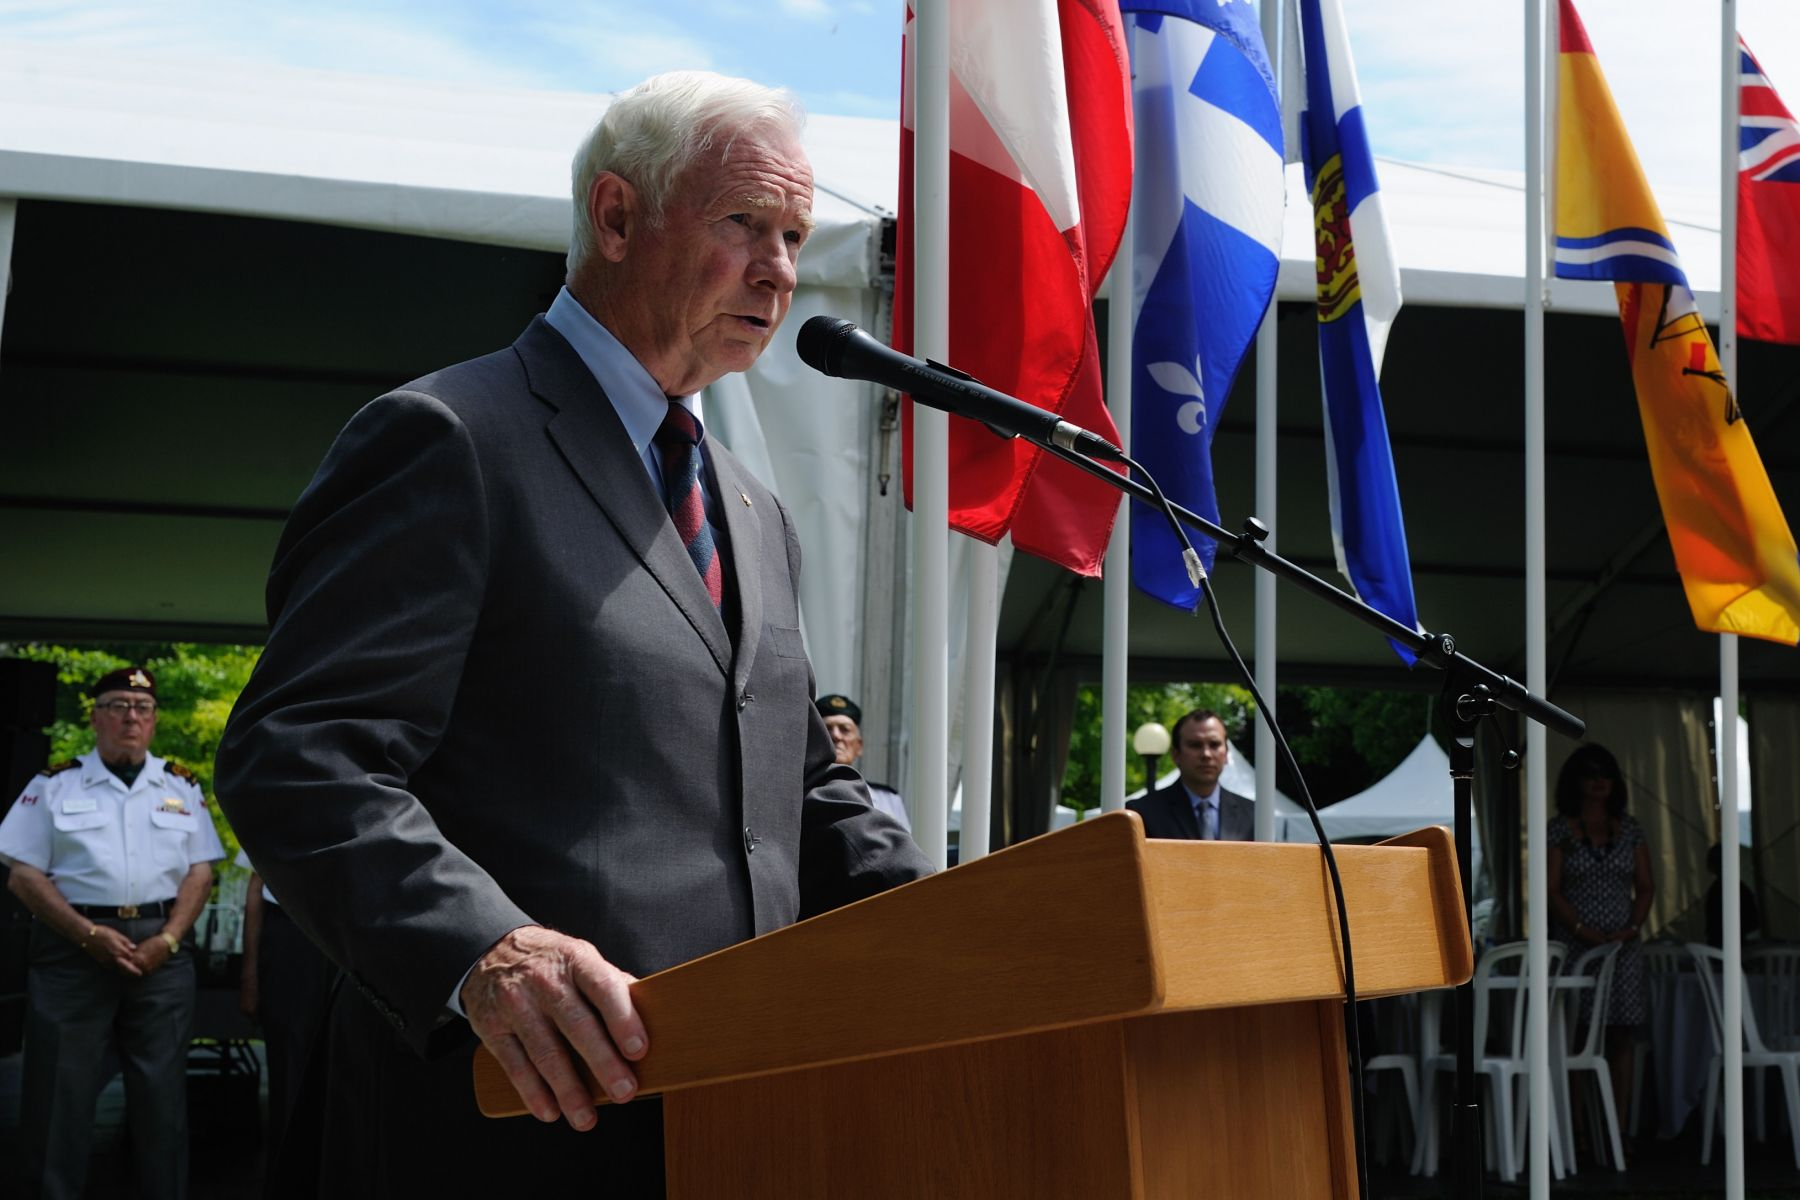 """Since Canada's earliest days, the First Nations, Métis and Inuit peoples have given much to forge and sustain peace within our own borders and around the world,"" said His Excellency. ""They have overcome cultural challenges to help shape Canada into what it has become today. And they have served and sacrificed with honour, distinction, courage and resolve in ways that conveyed time-honoured traditions and deeply-held beliefs."""